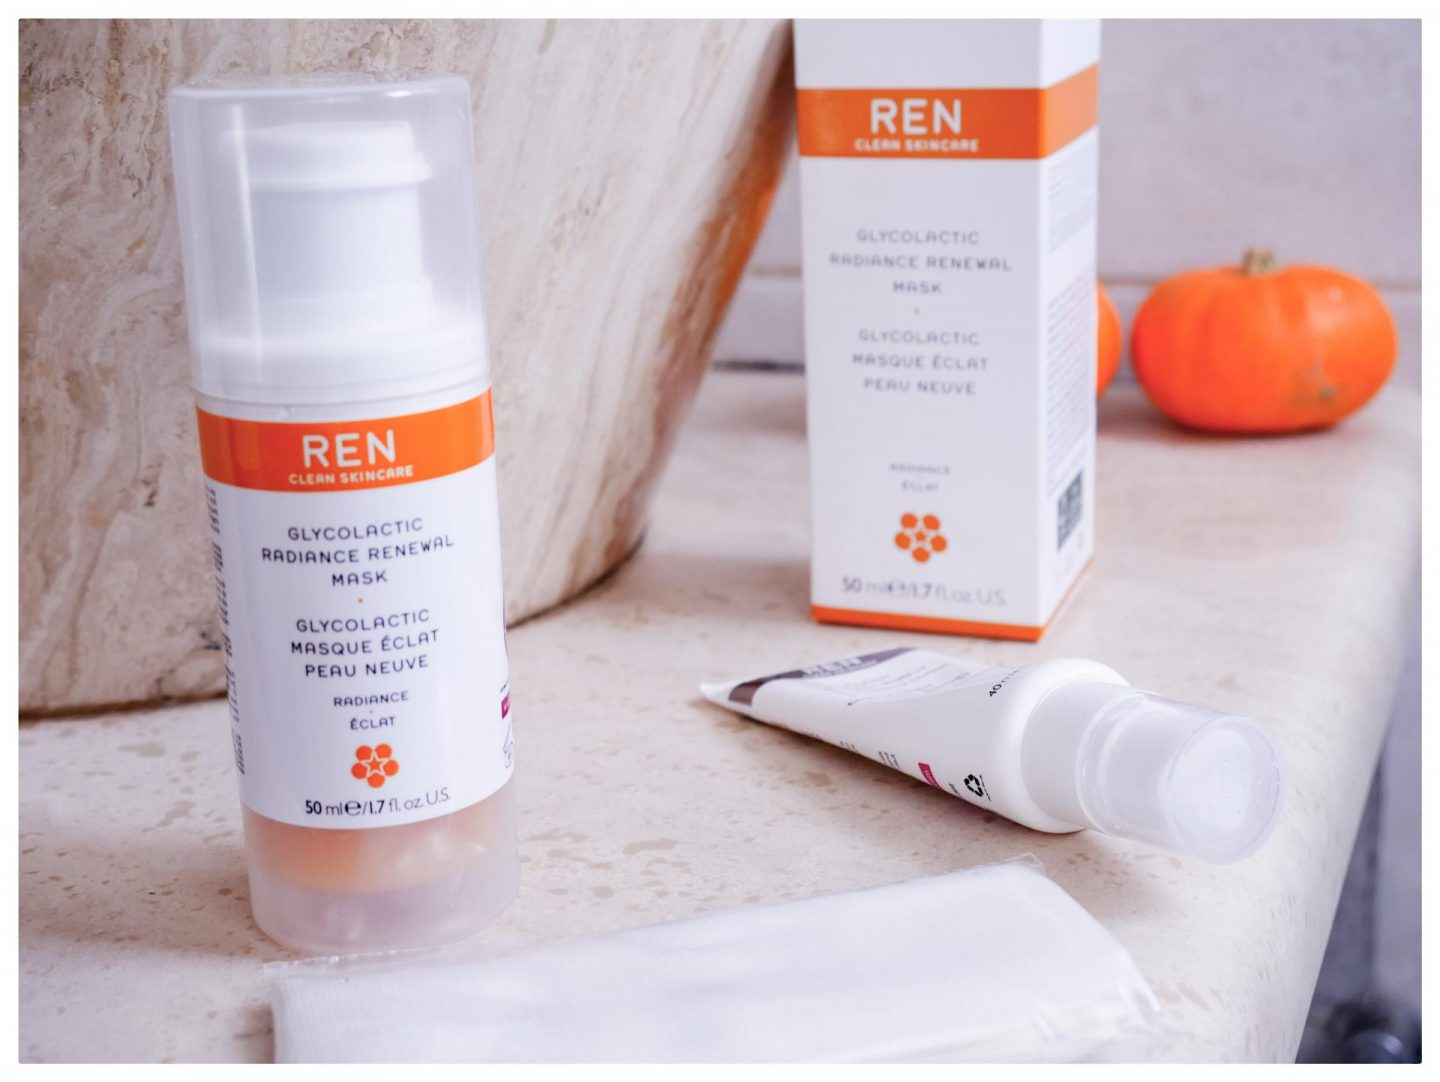 Ren Skincare Glyco Lactic Radiance Renewal Mask Review